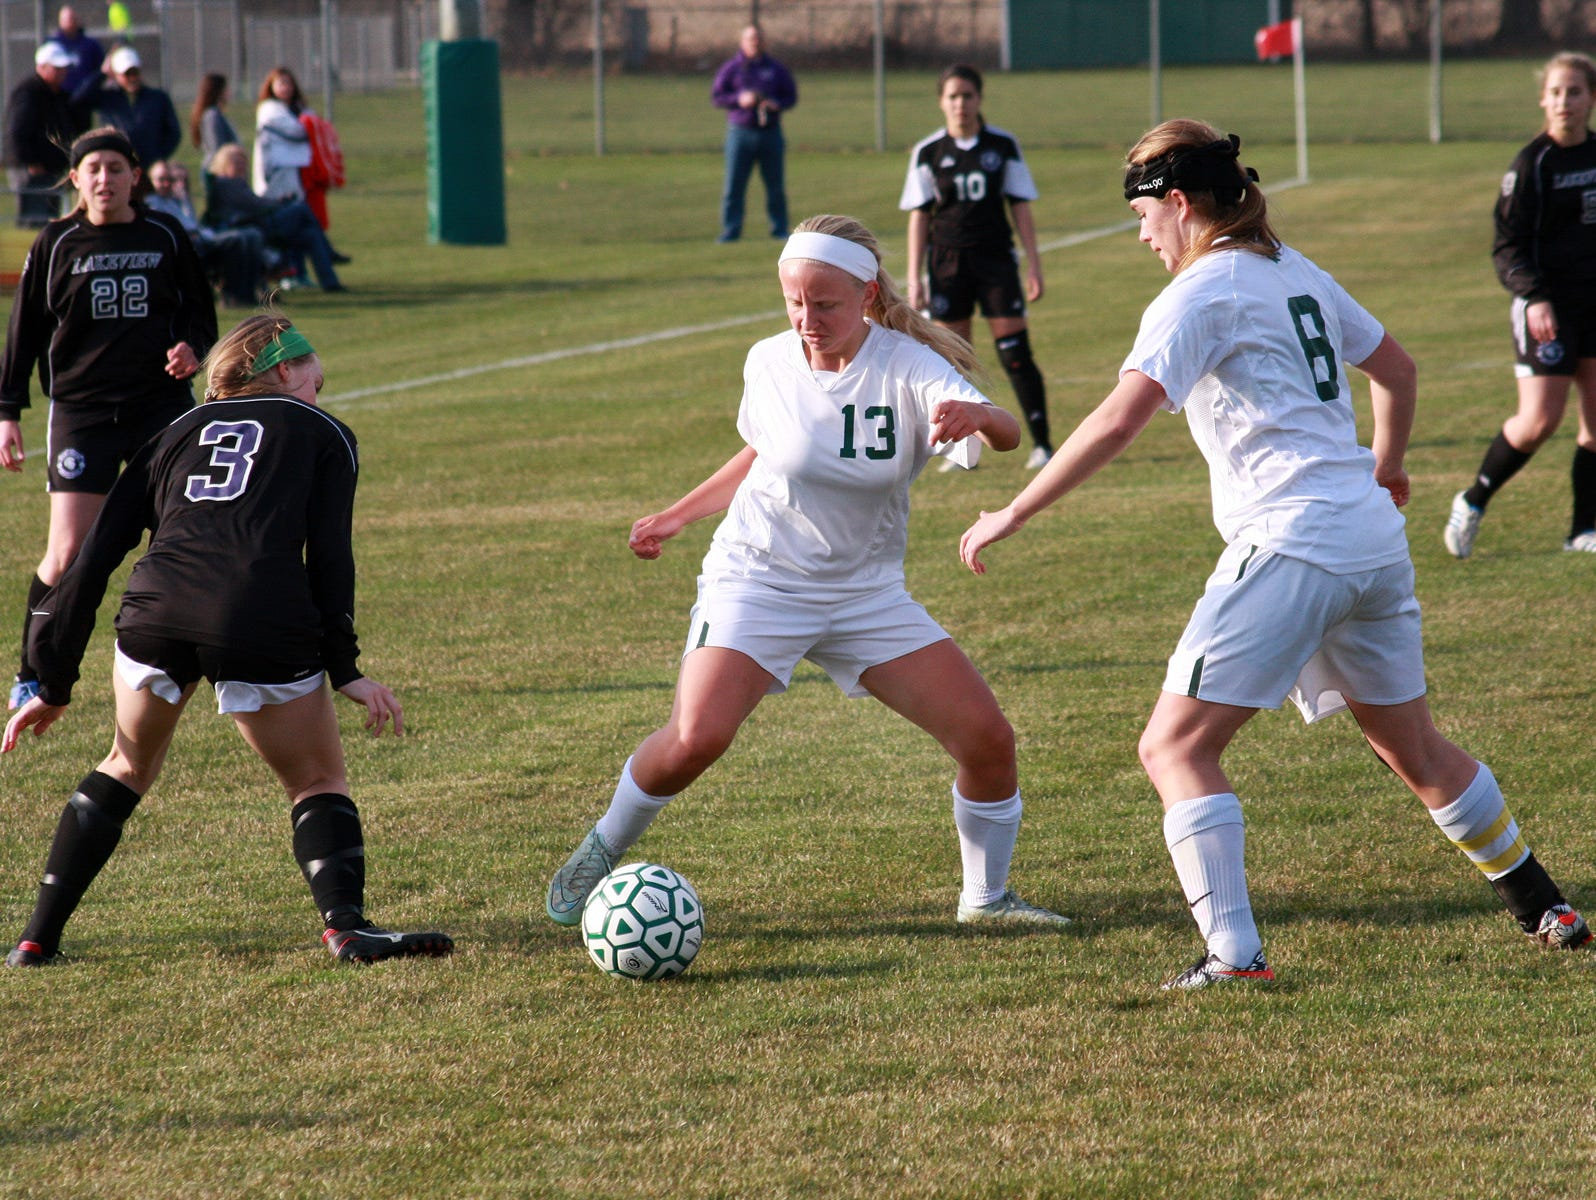 Pennfield's Naomi Davis takes possession of the ball during a match against Lakeview